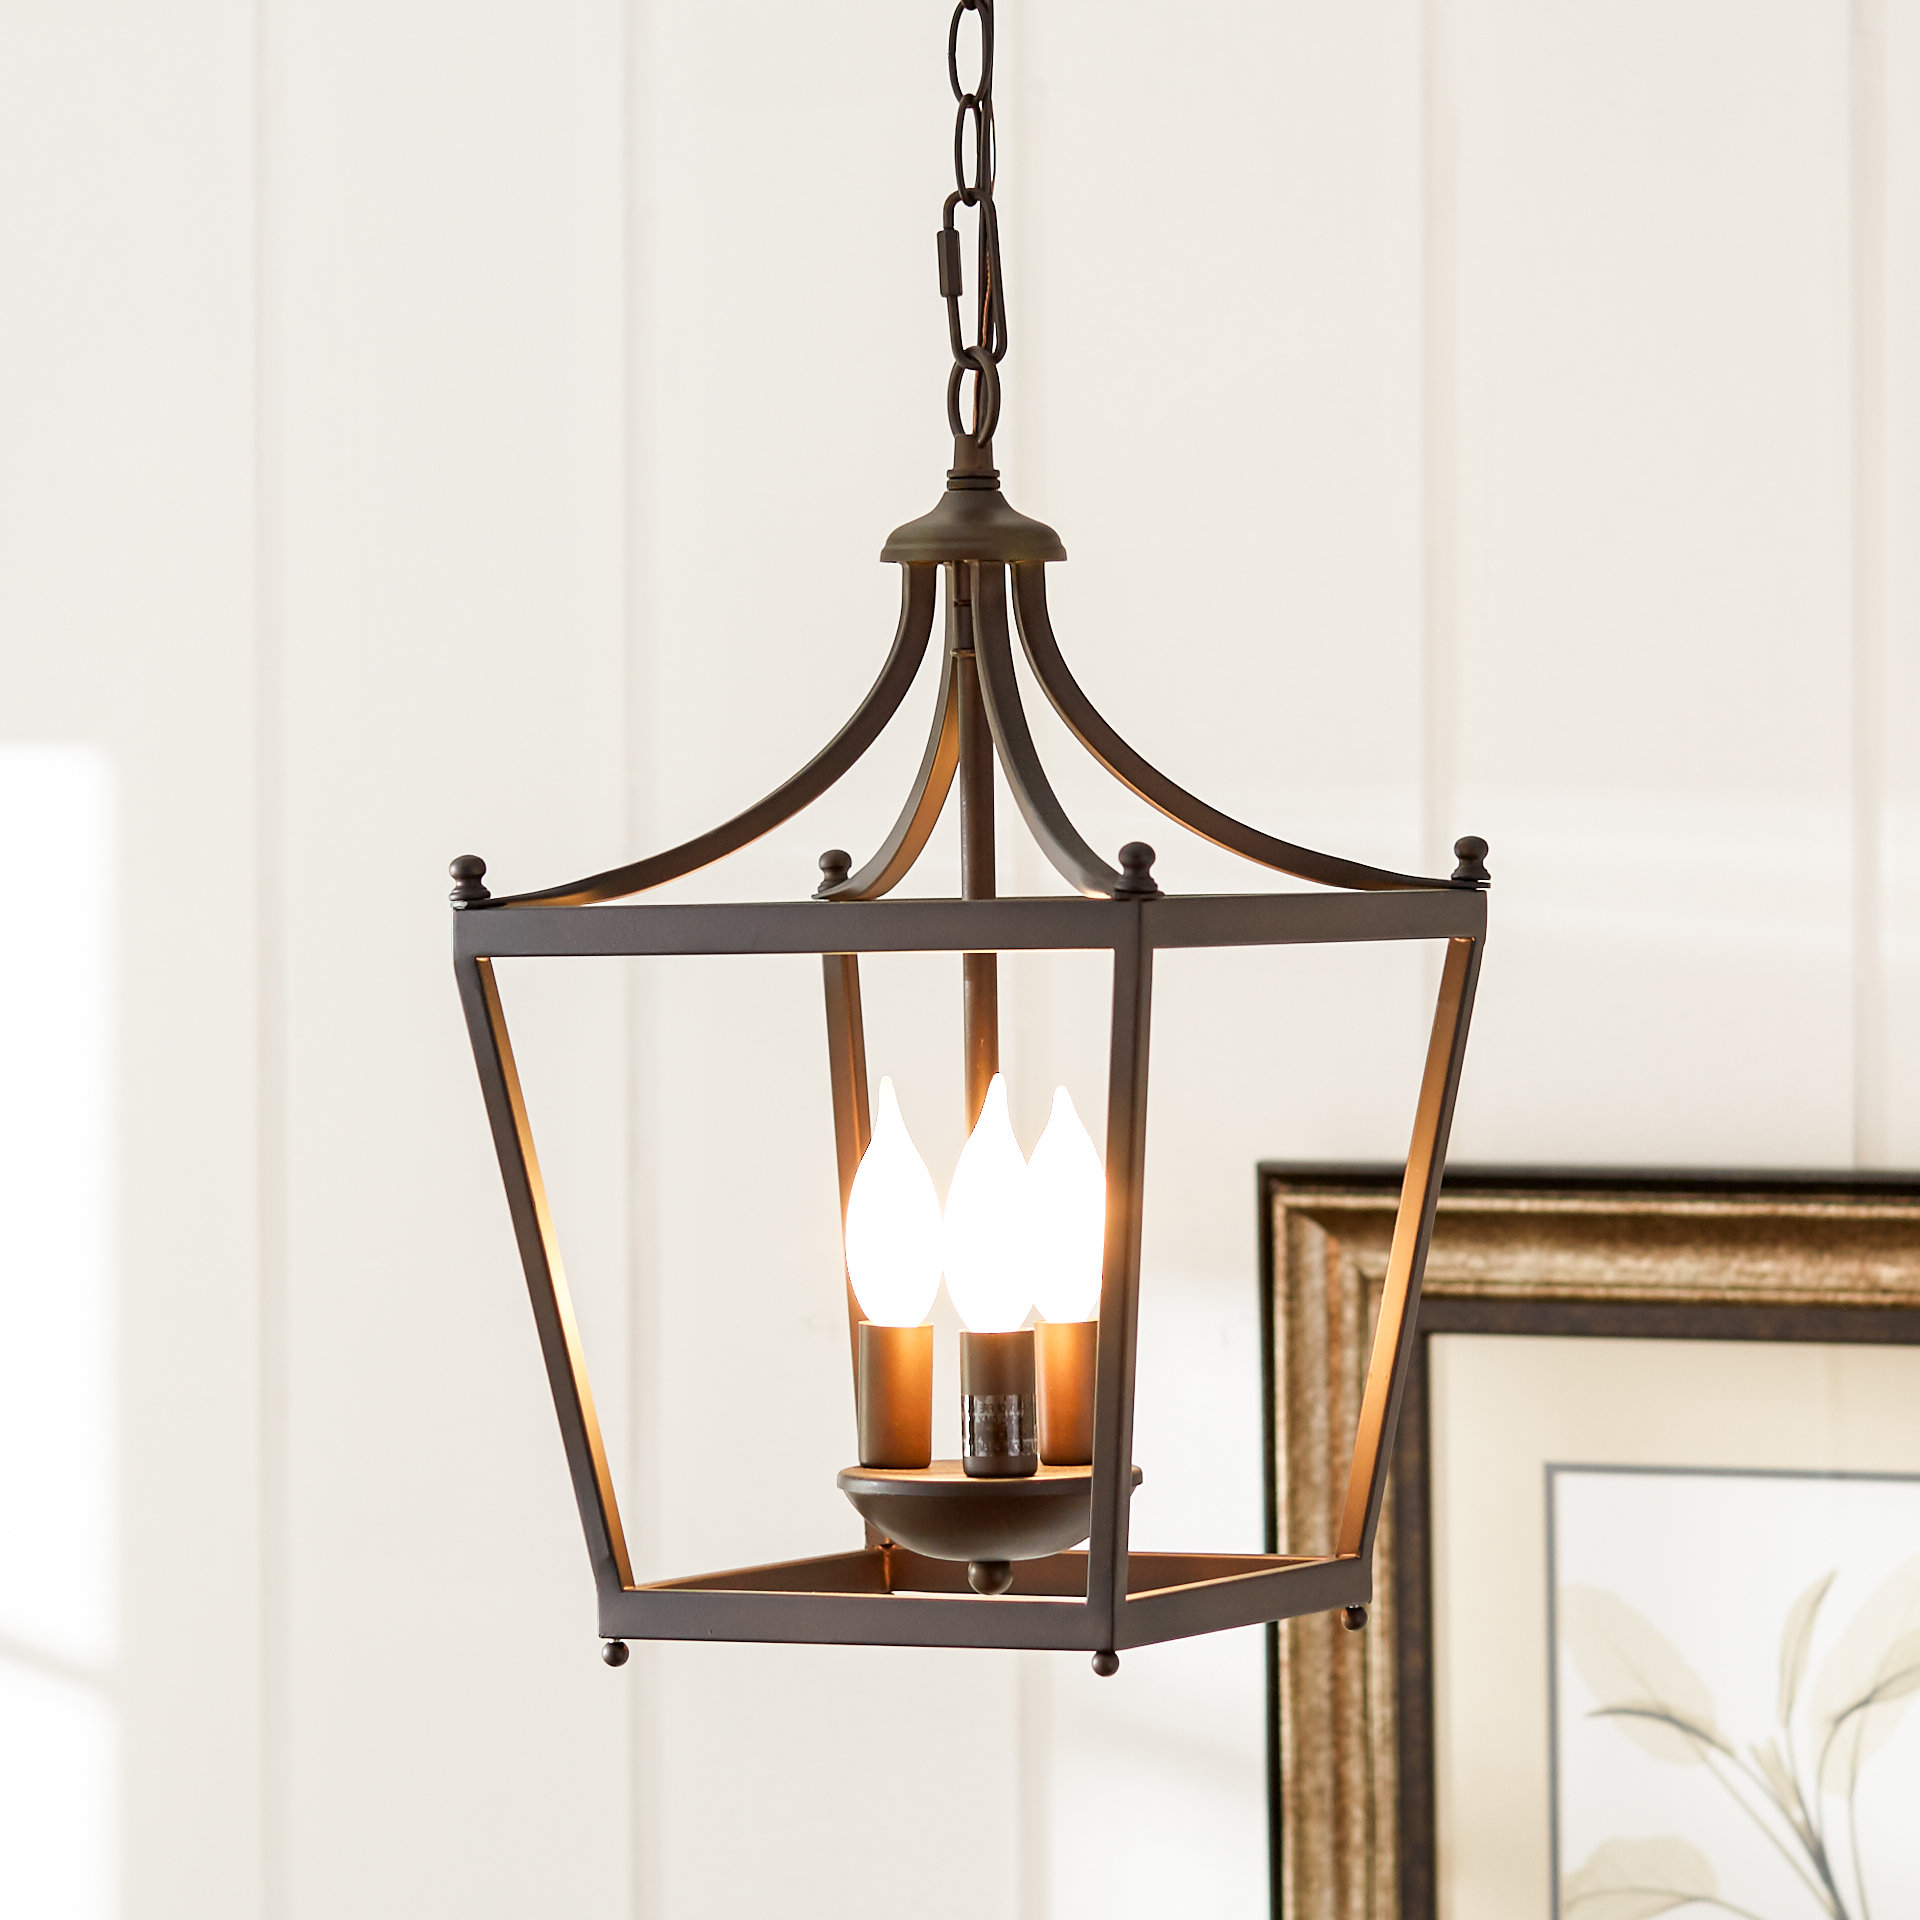 Armande 3 Light Lantern Geometric Pendants Inside Well Known Birch Lane™ Heritage Gabriella 3 Light Lantern Geometric Pendant (View 3 of 20)